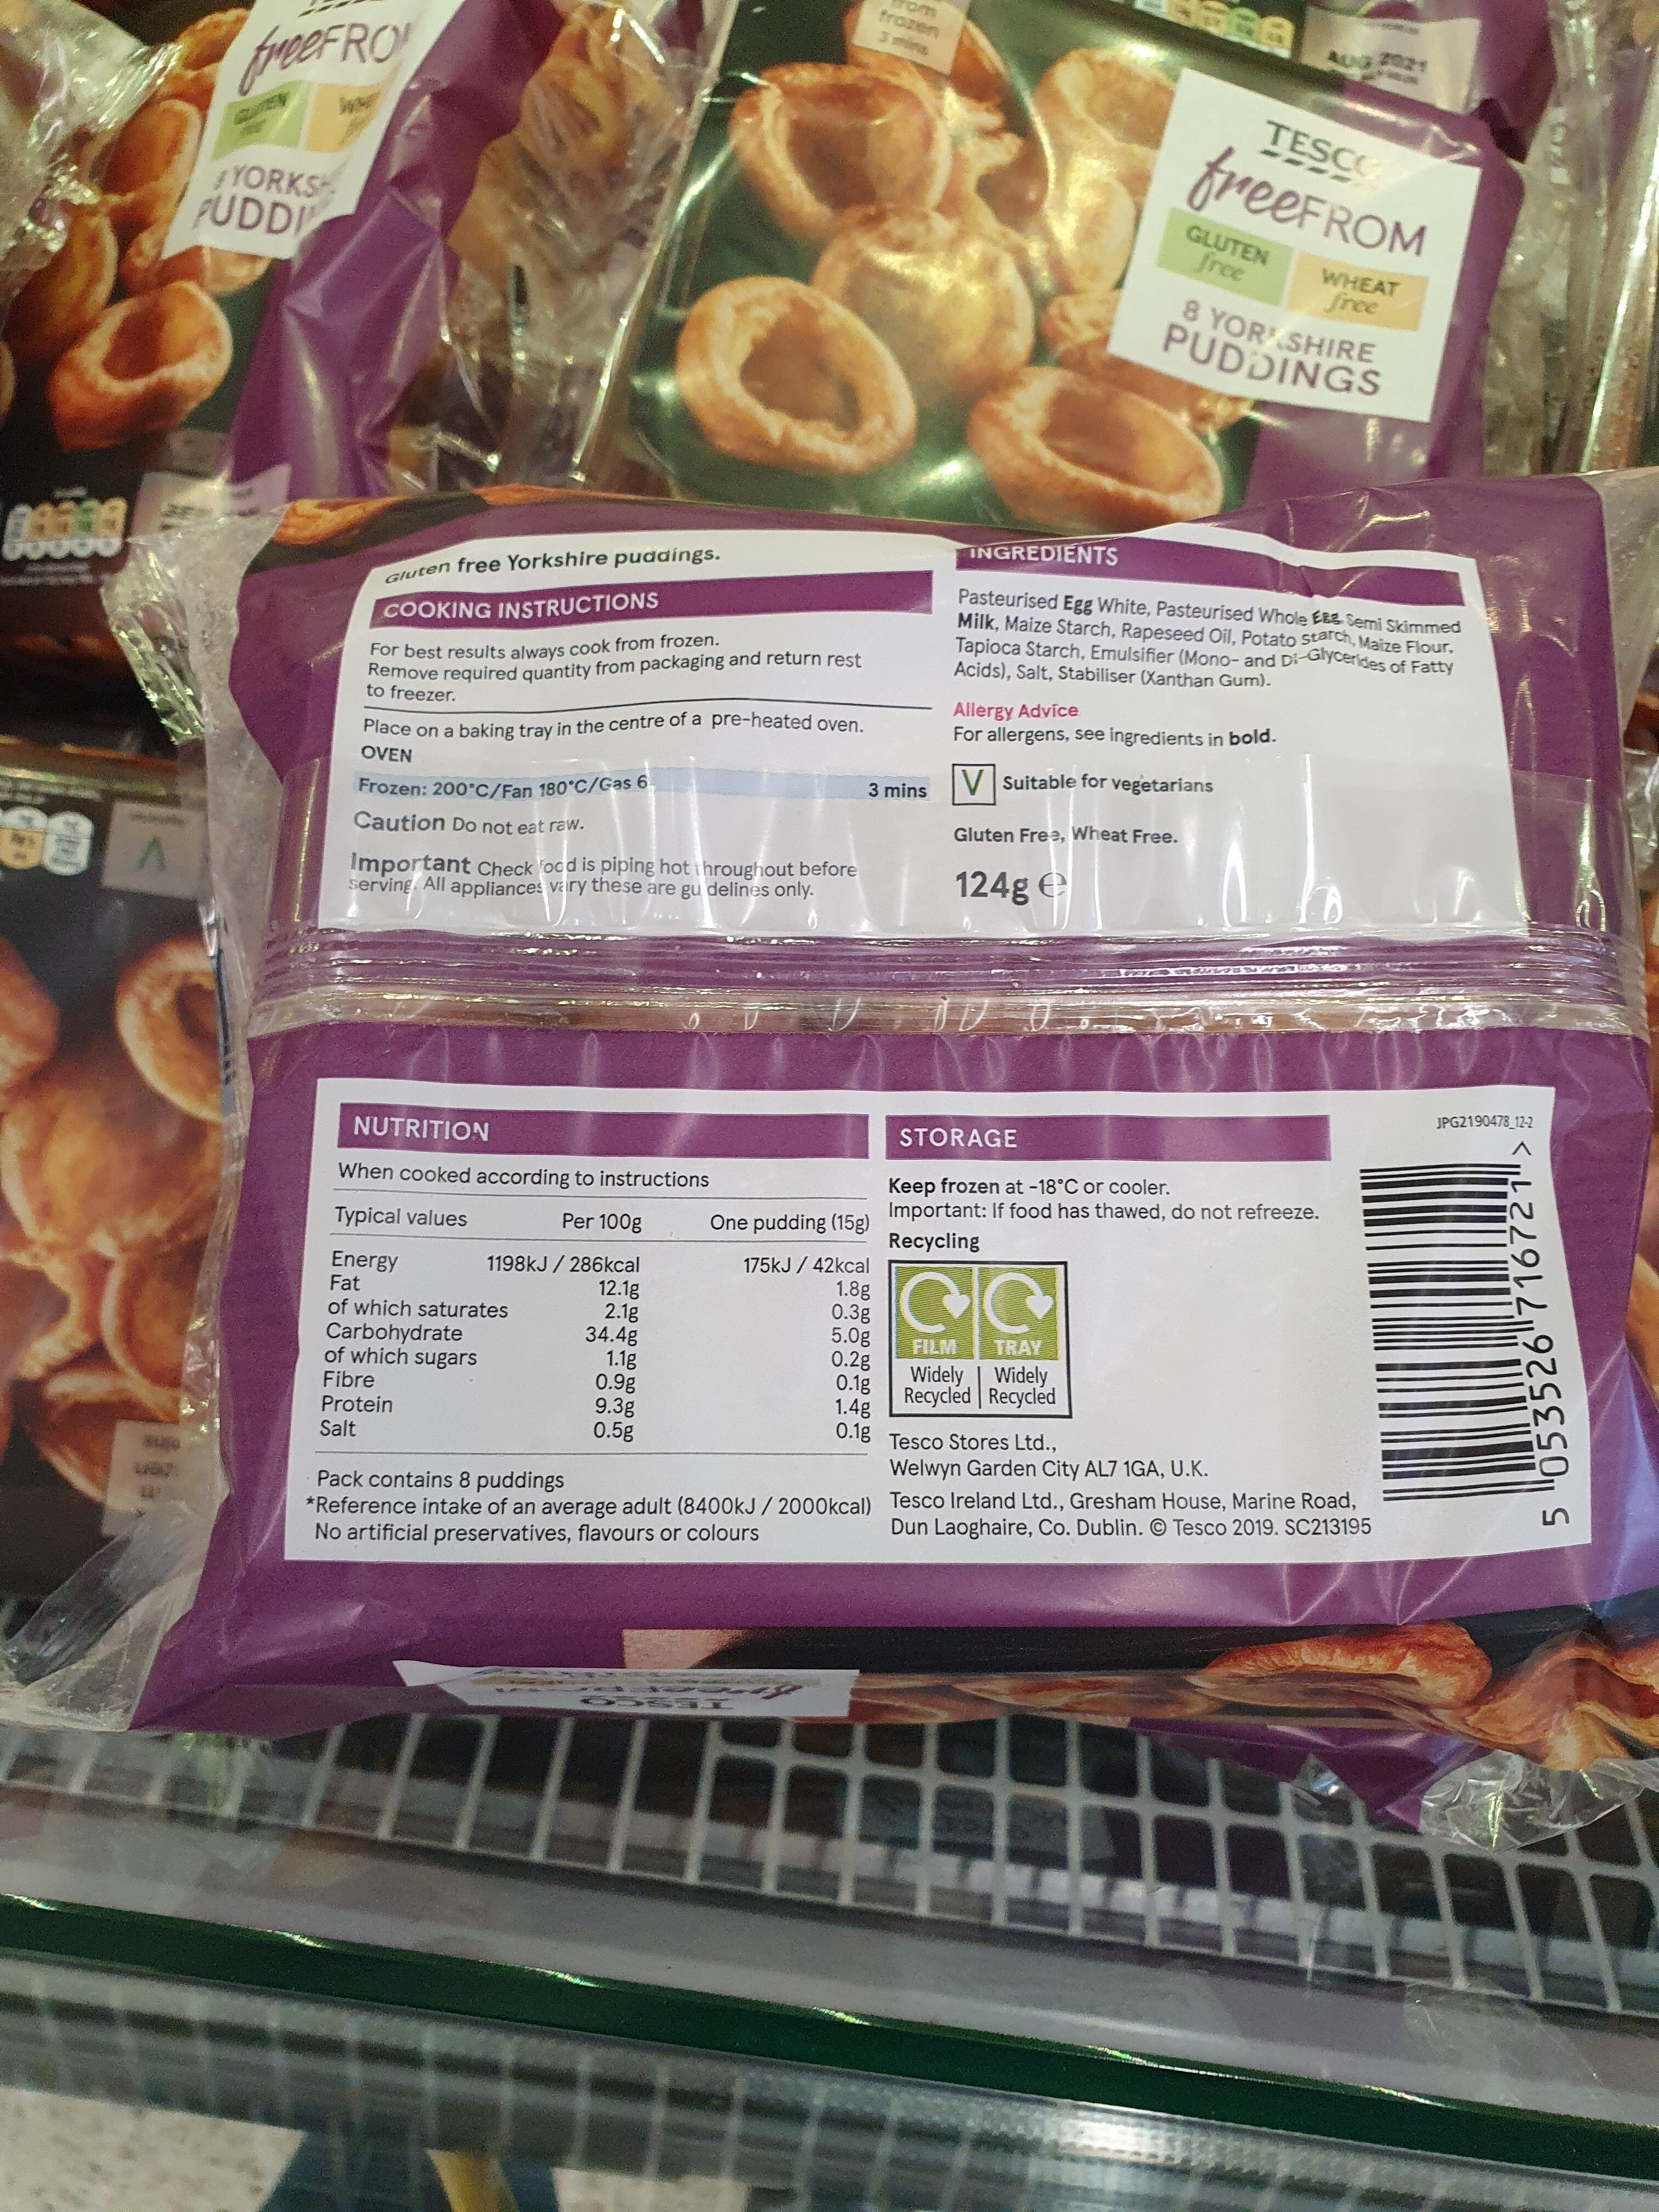 tesco free from Yorkshire puddings - Ingrédients - en